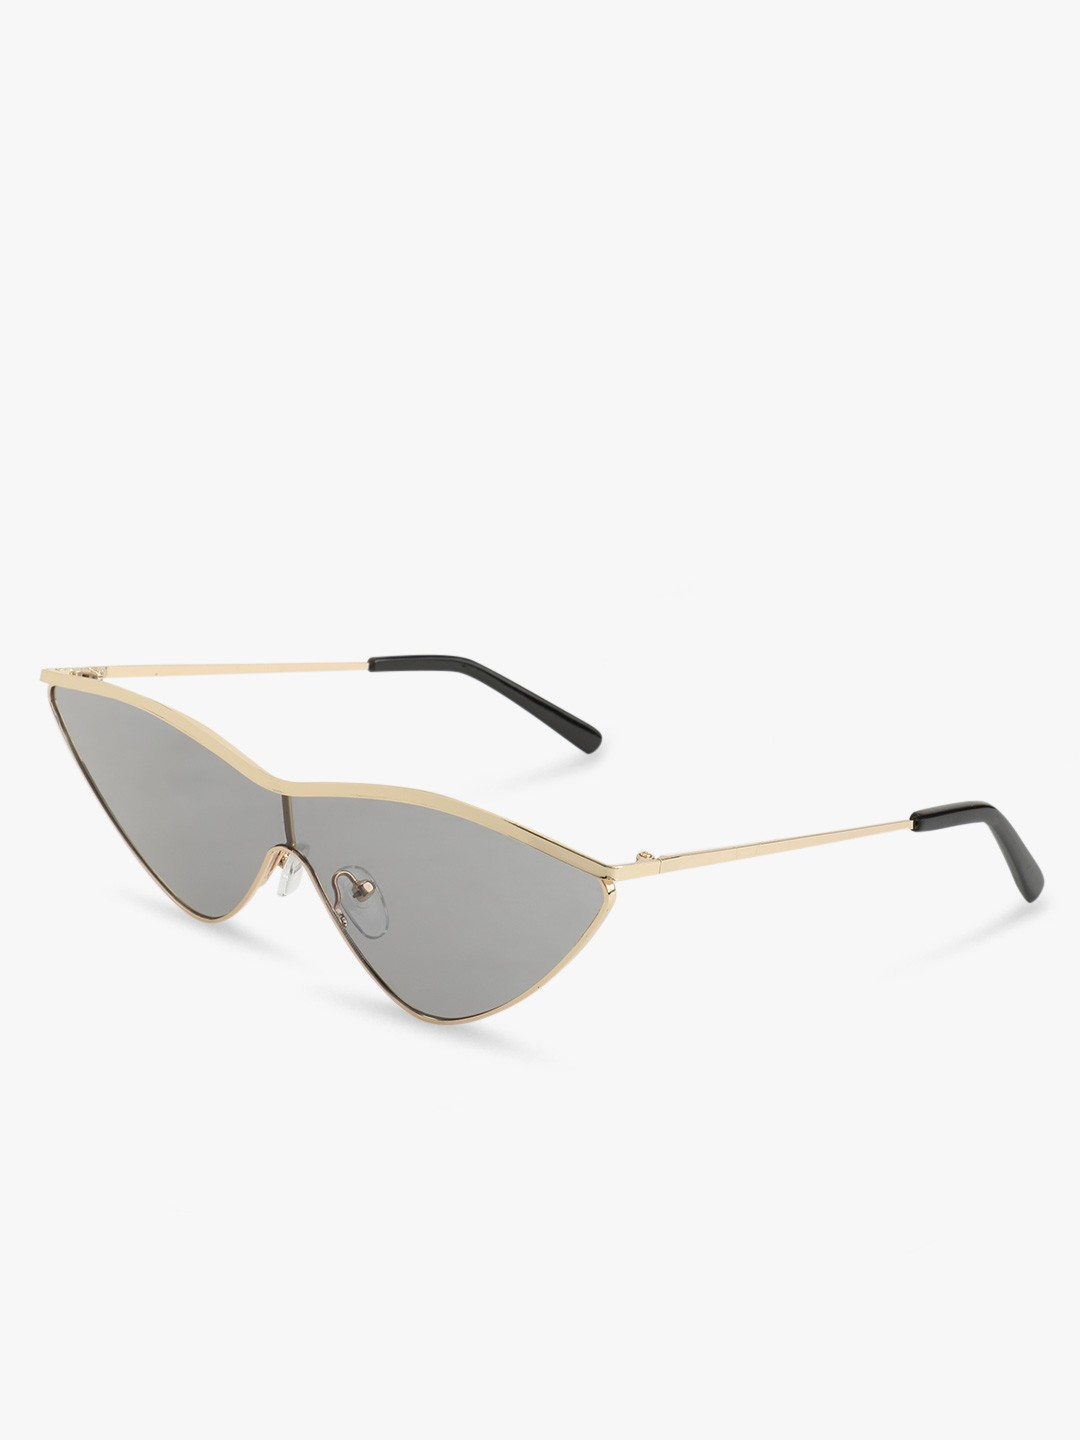 Sneak-a-Peek Gold Tinted Lens Cateye Sunglasses 1